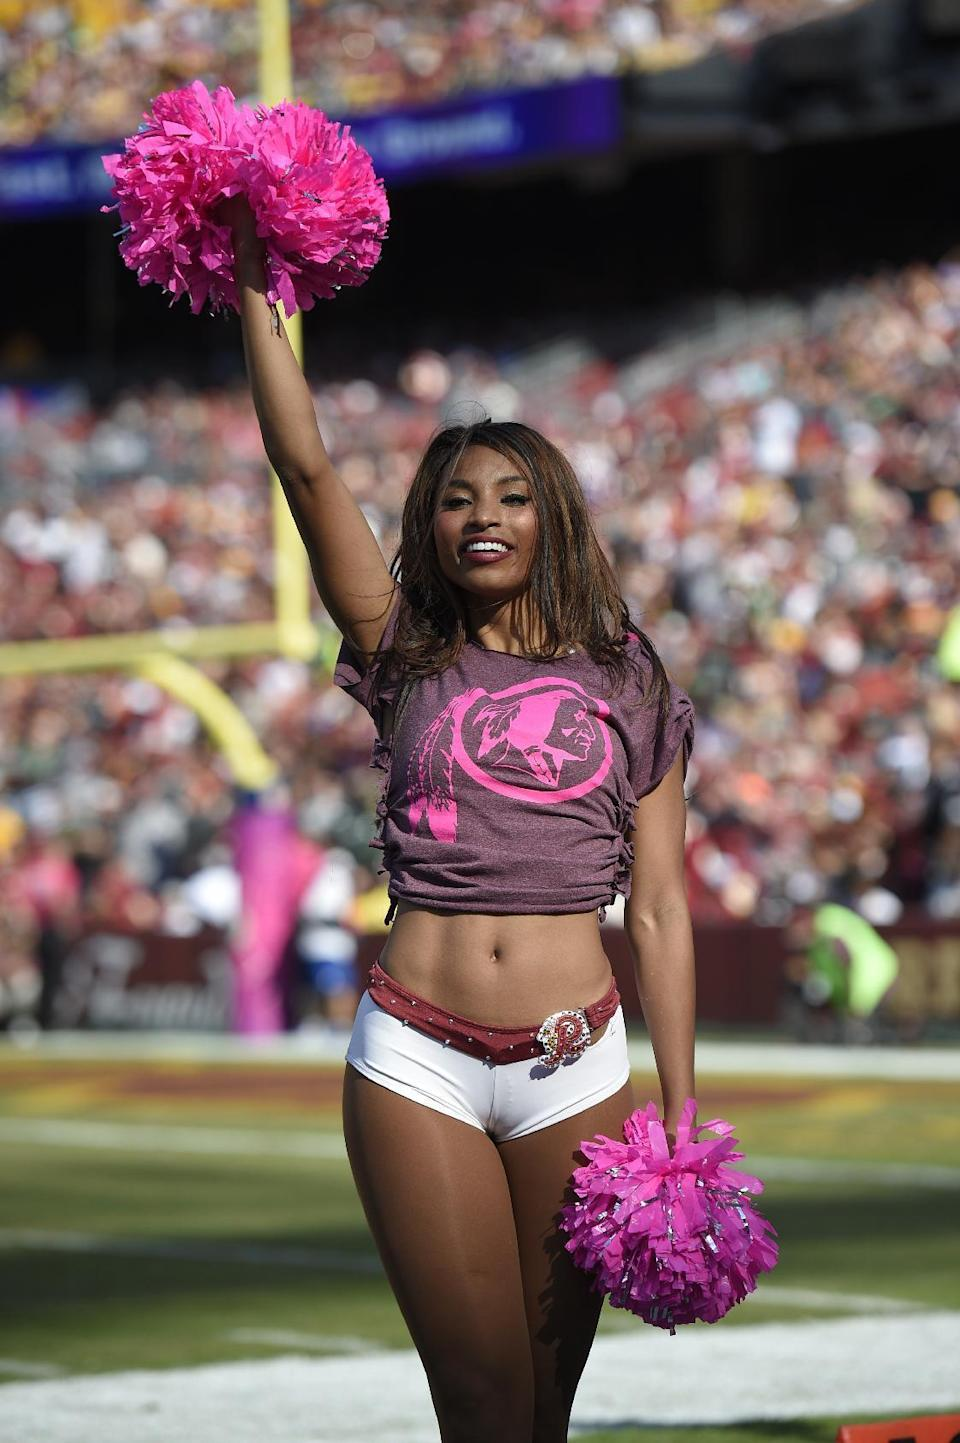 <p>A Washington Redskins cheerleader performs during an NFL football game between the Redskins and the Philadelphia Eagles, Sunday, Oct. 16, 2016, in Landover, Md. (AP Photo/Nick Wass) </p>